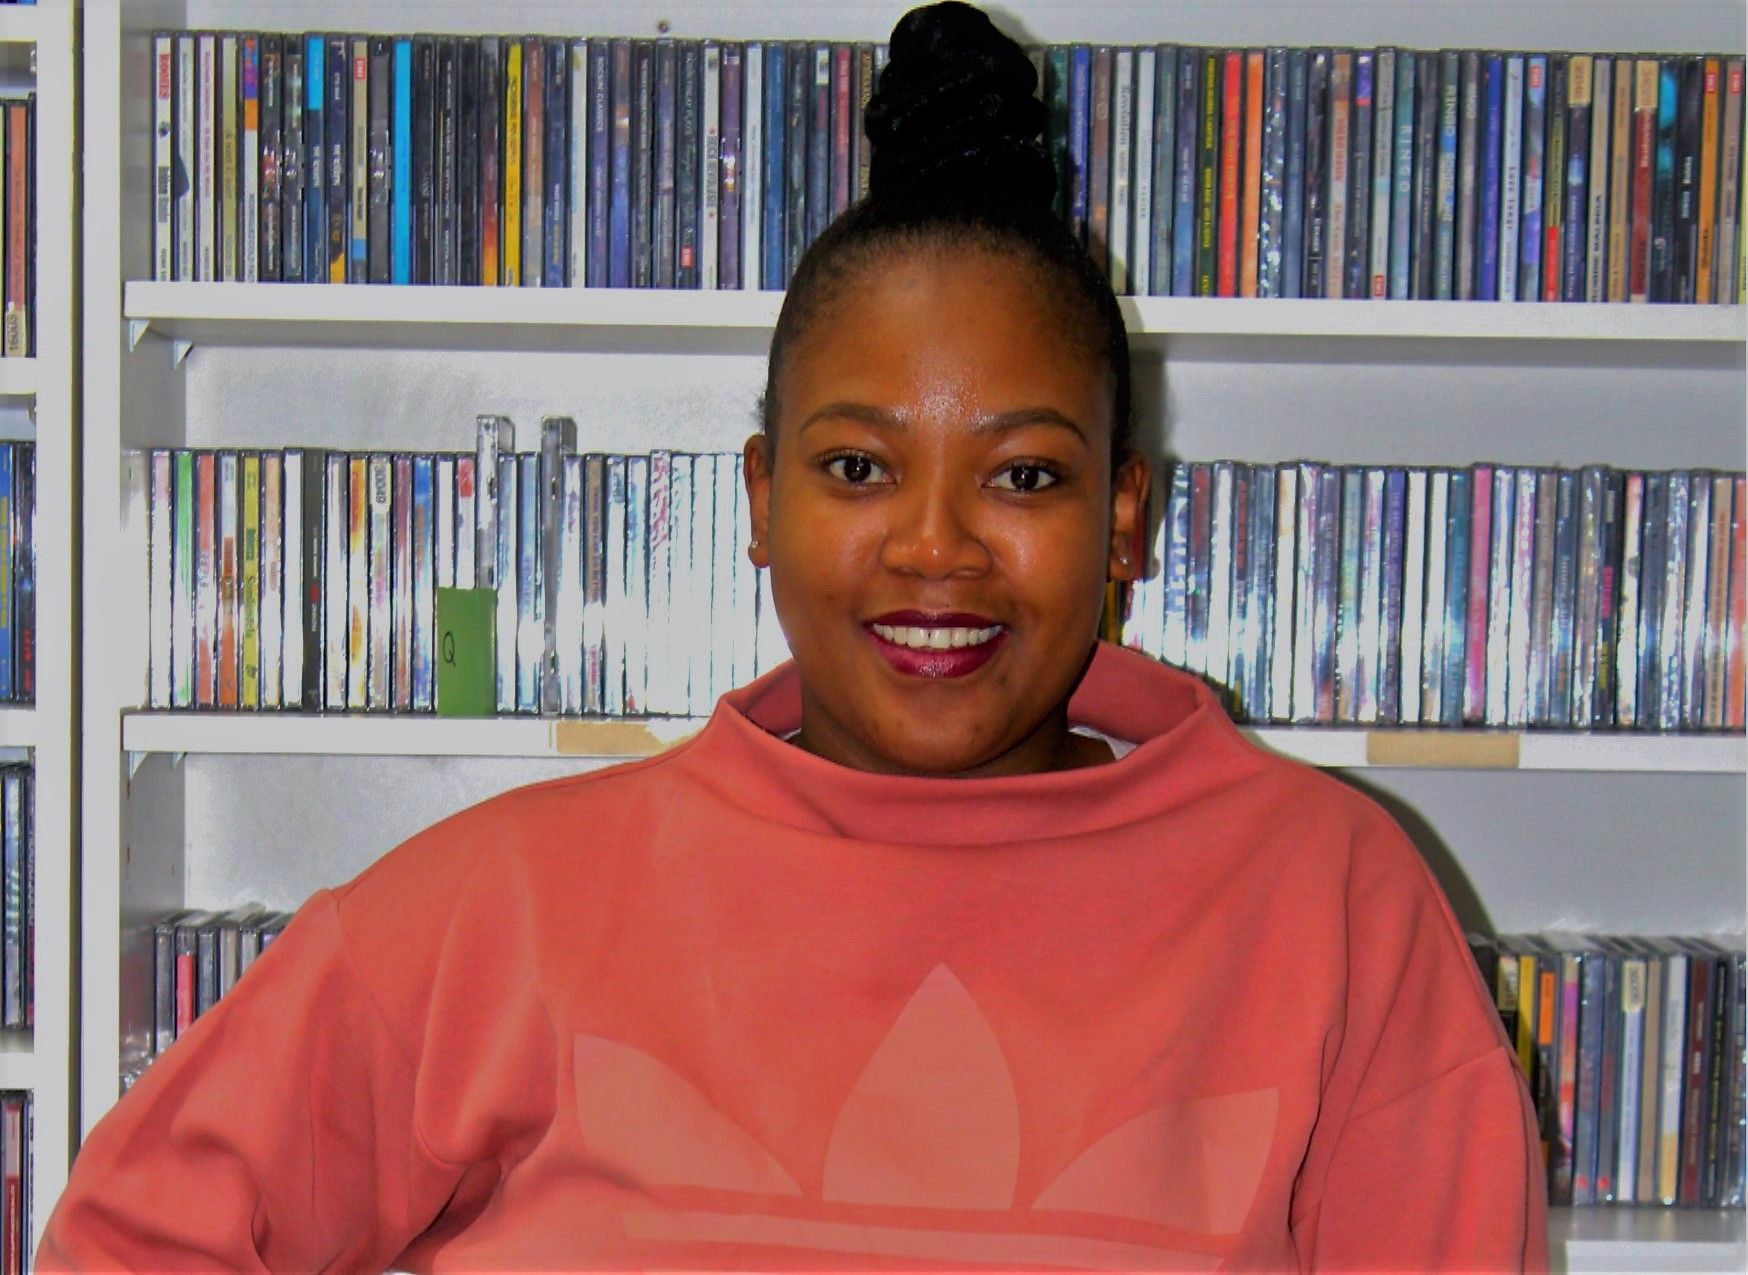 Nichume Opened Up About Depression Before Suicidal Death